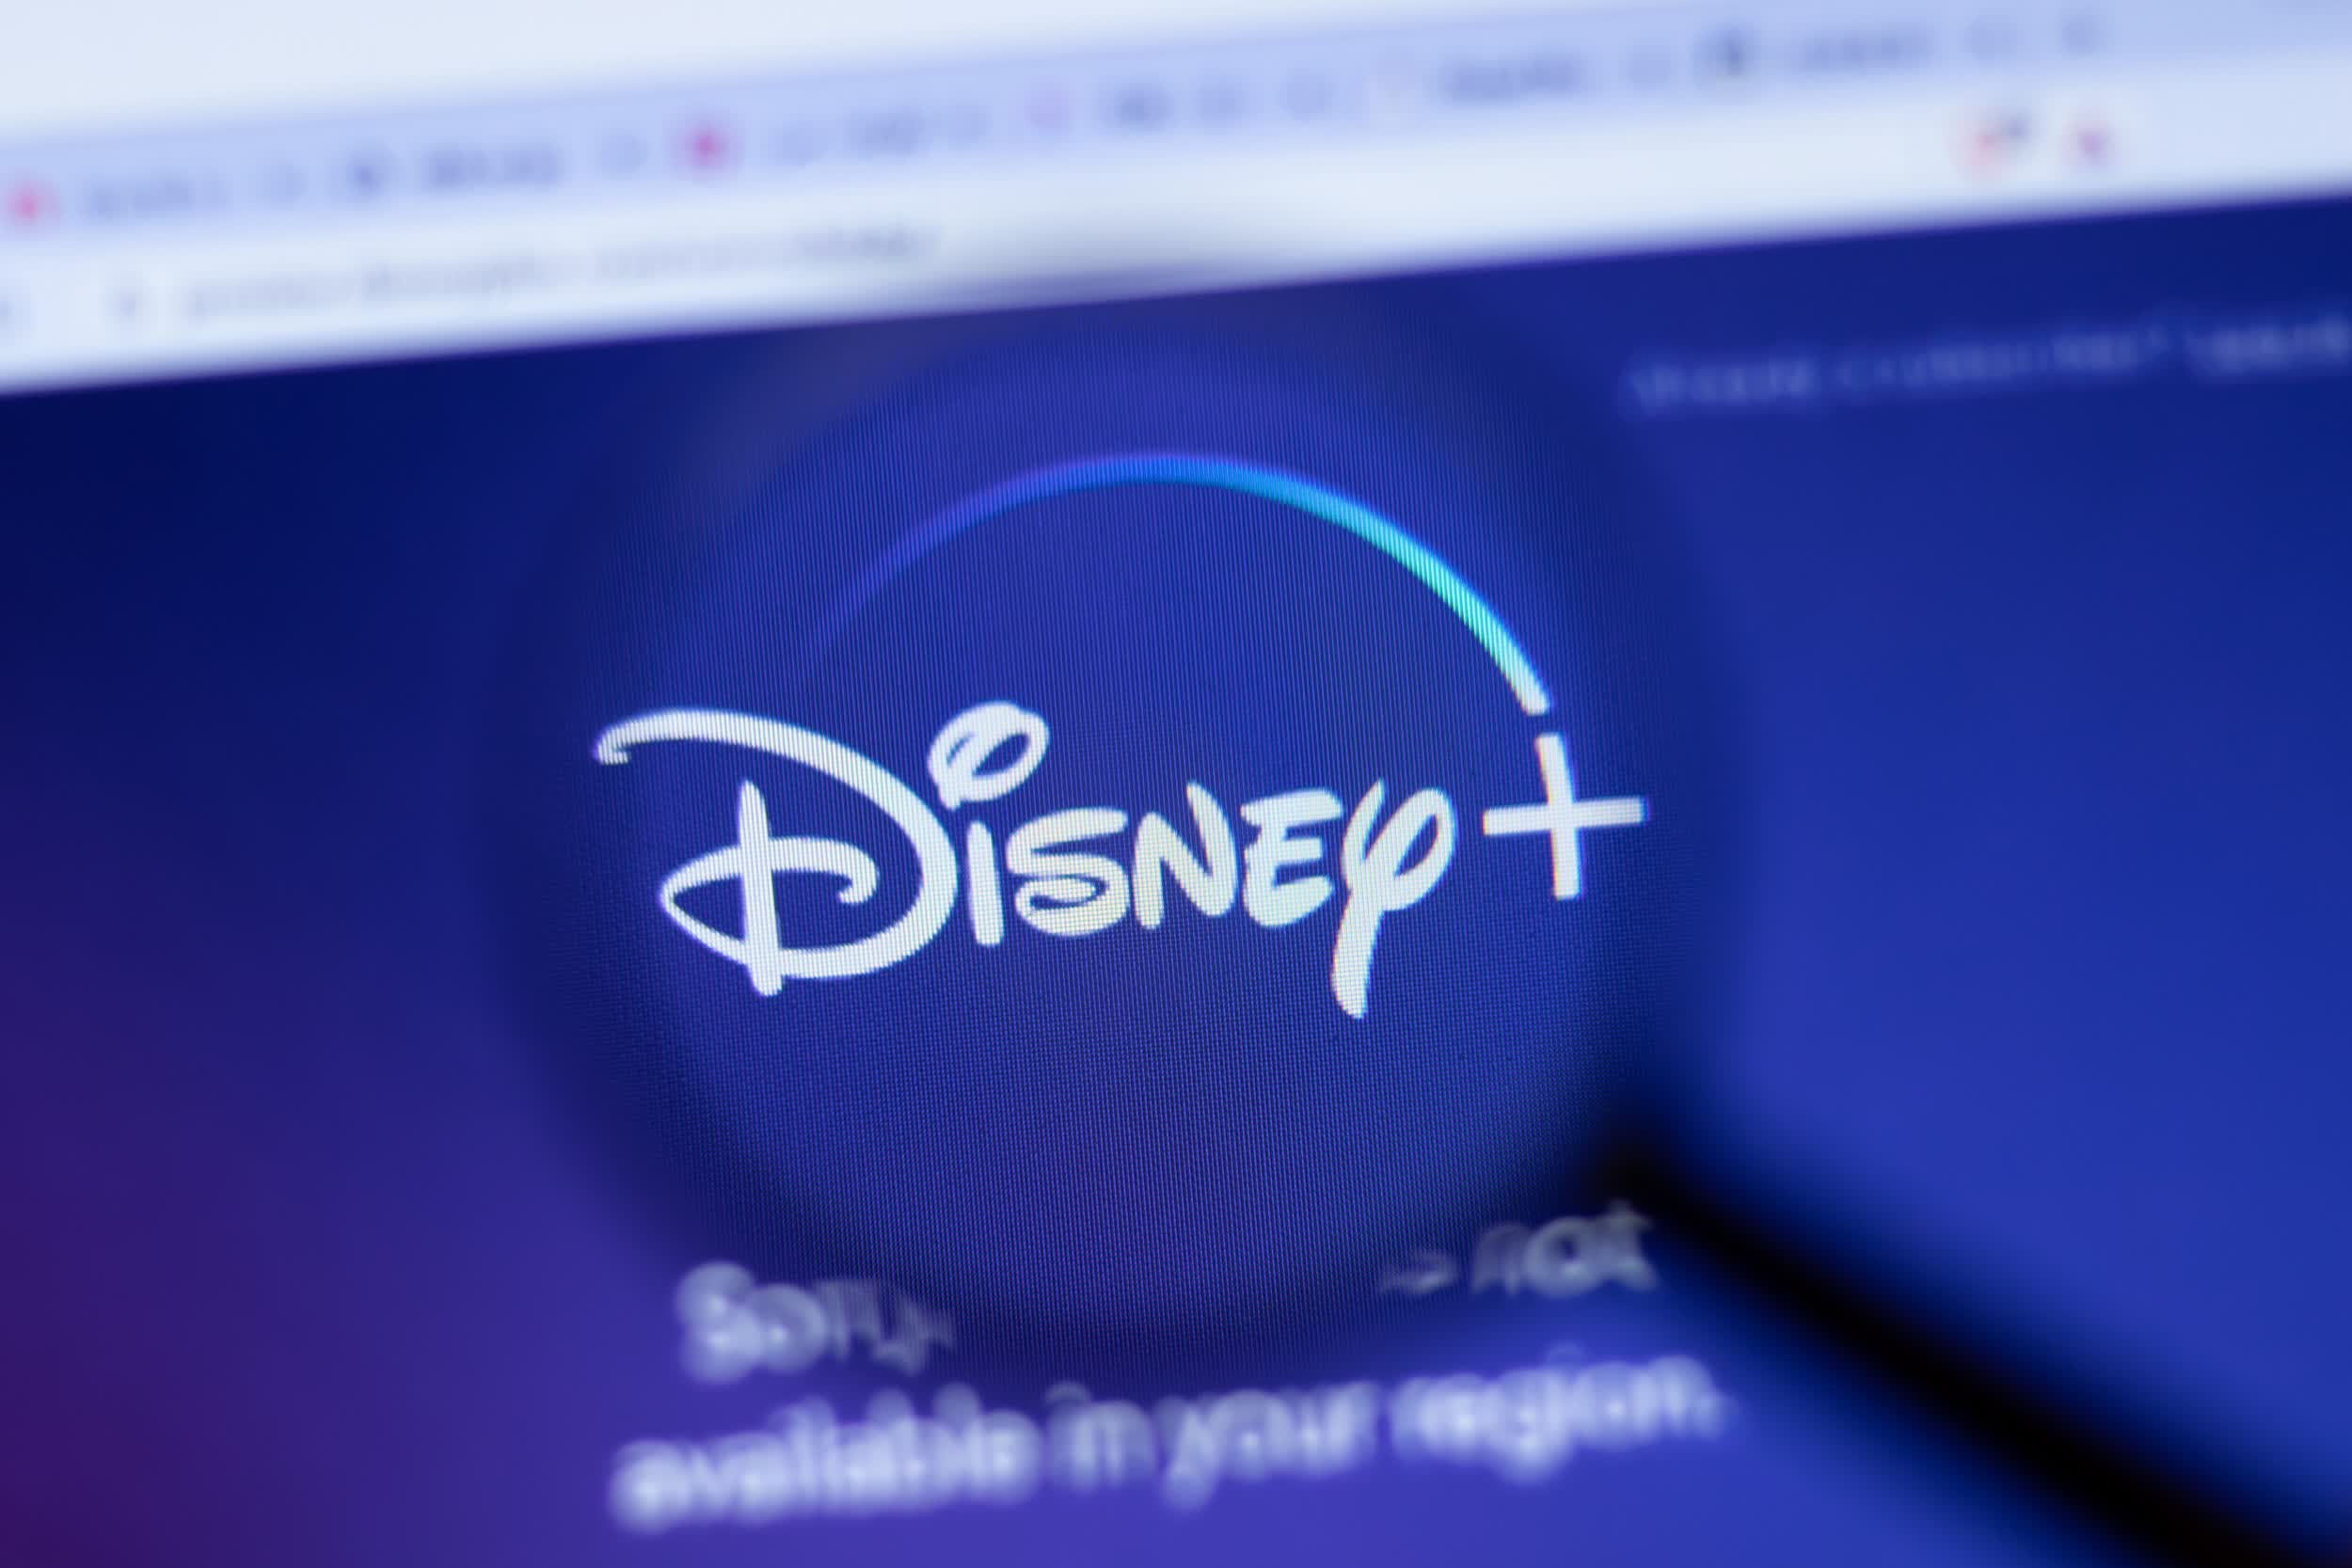 It took Disney+ just 16 months to reach 100 million subscribers